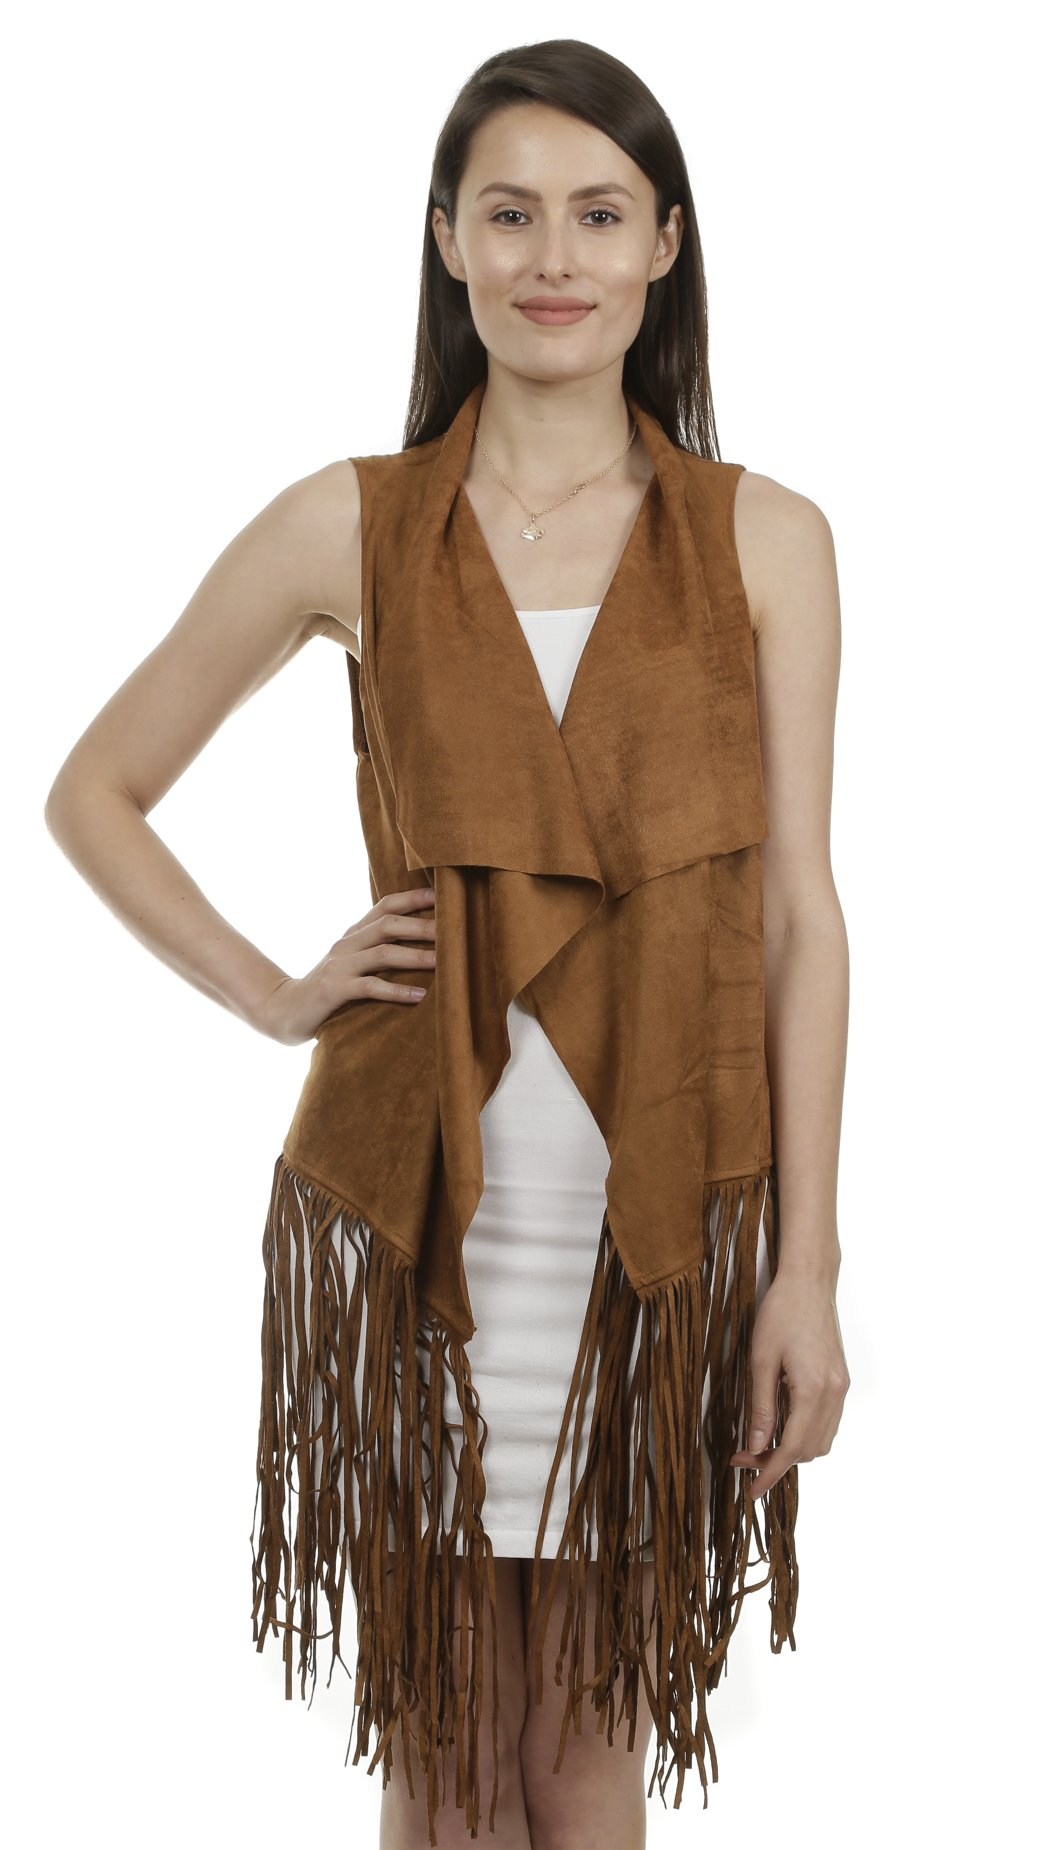 GILBIN'S Women's Fashion Micro-Suedette Long Open Front Cardigan Long Fringe Vest